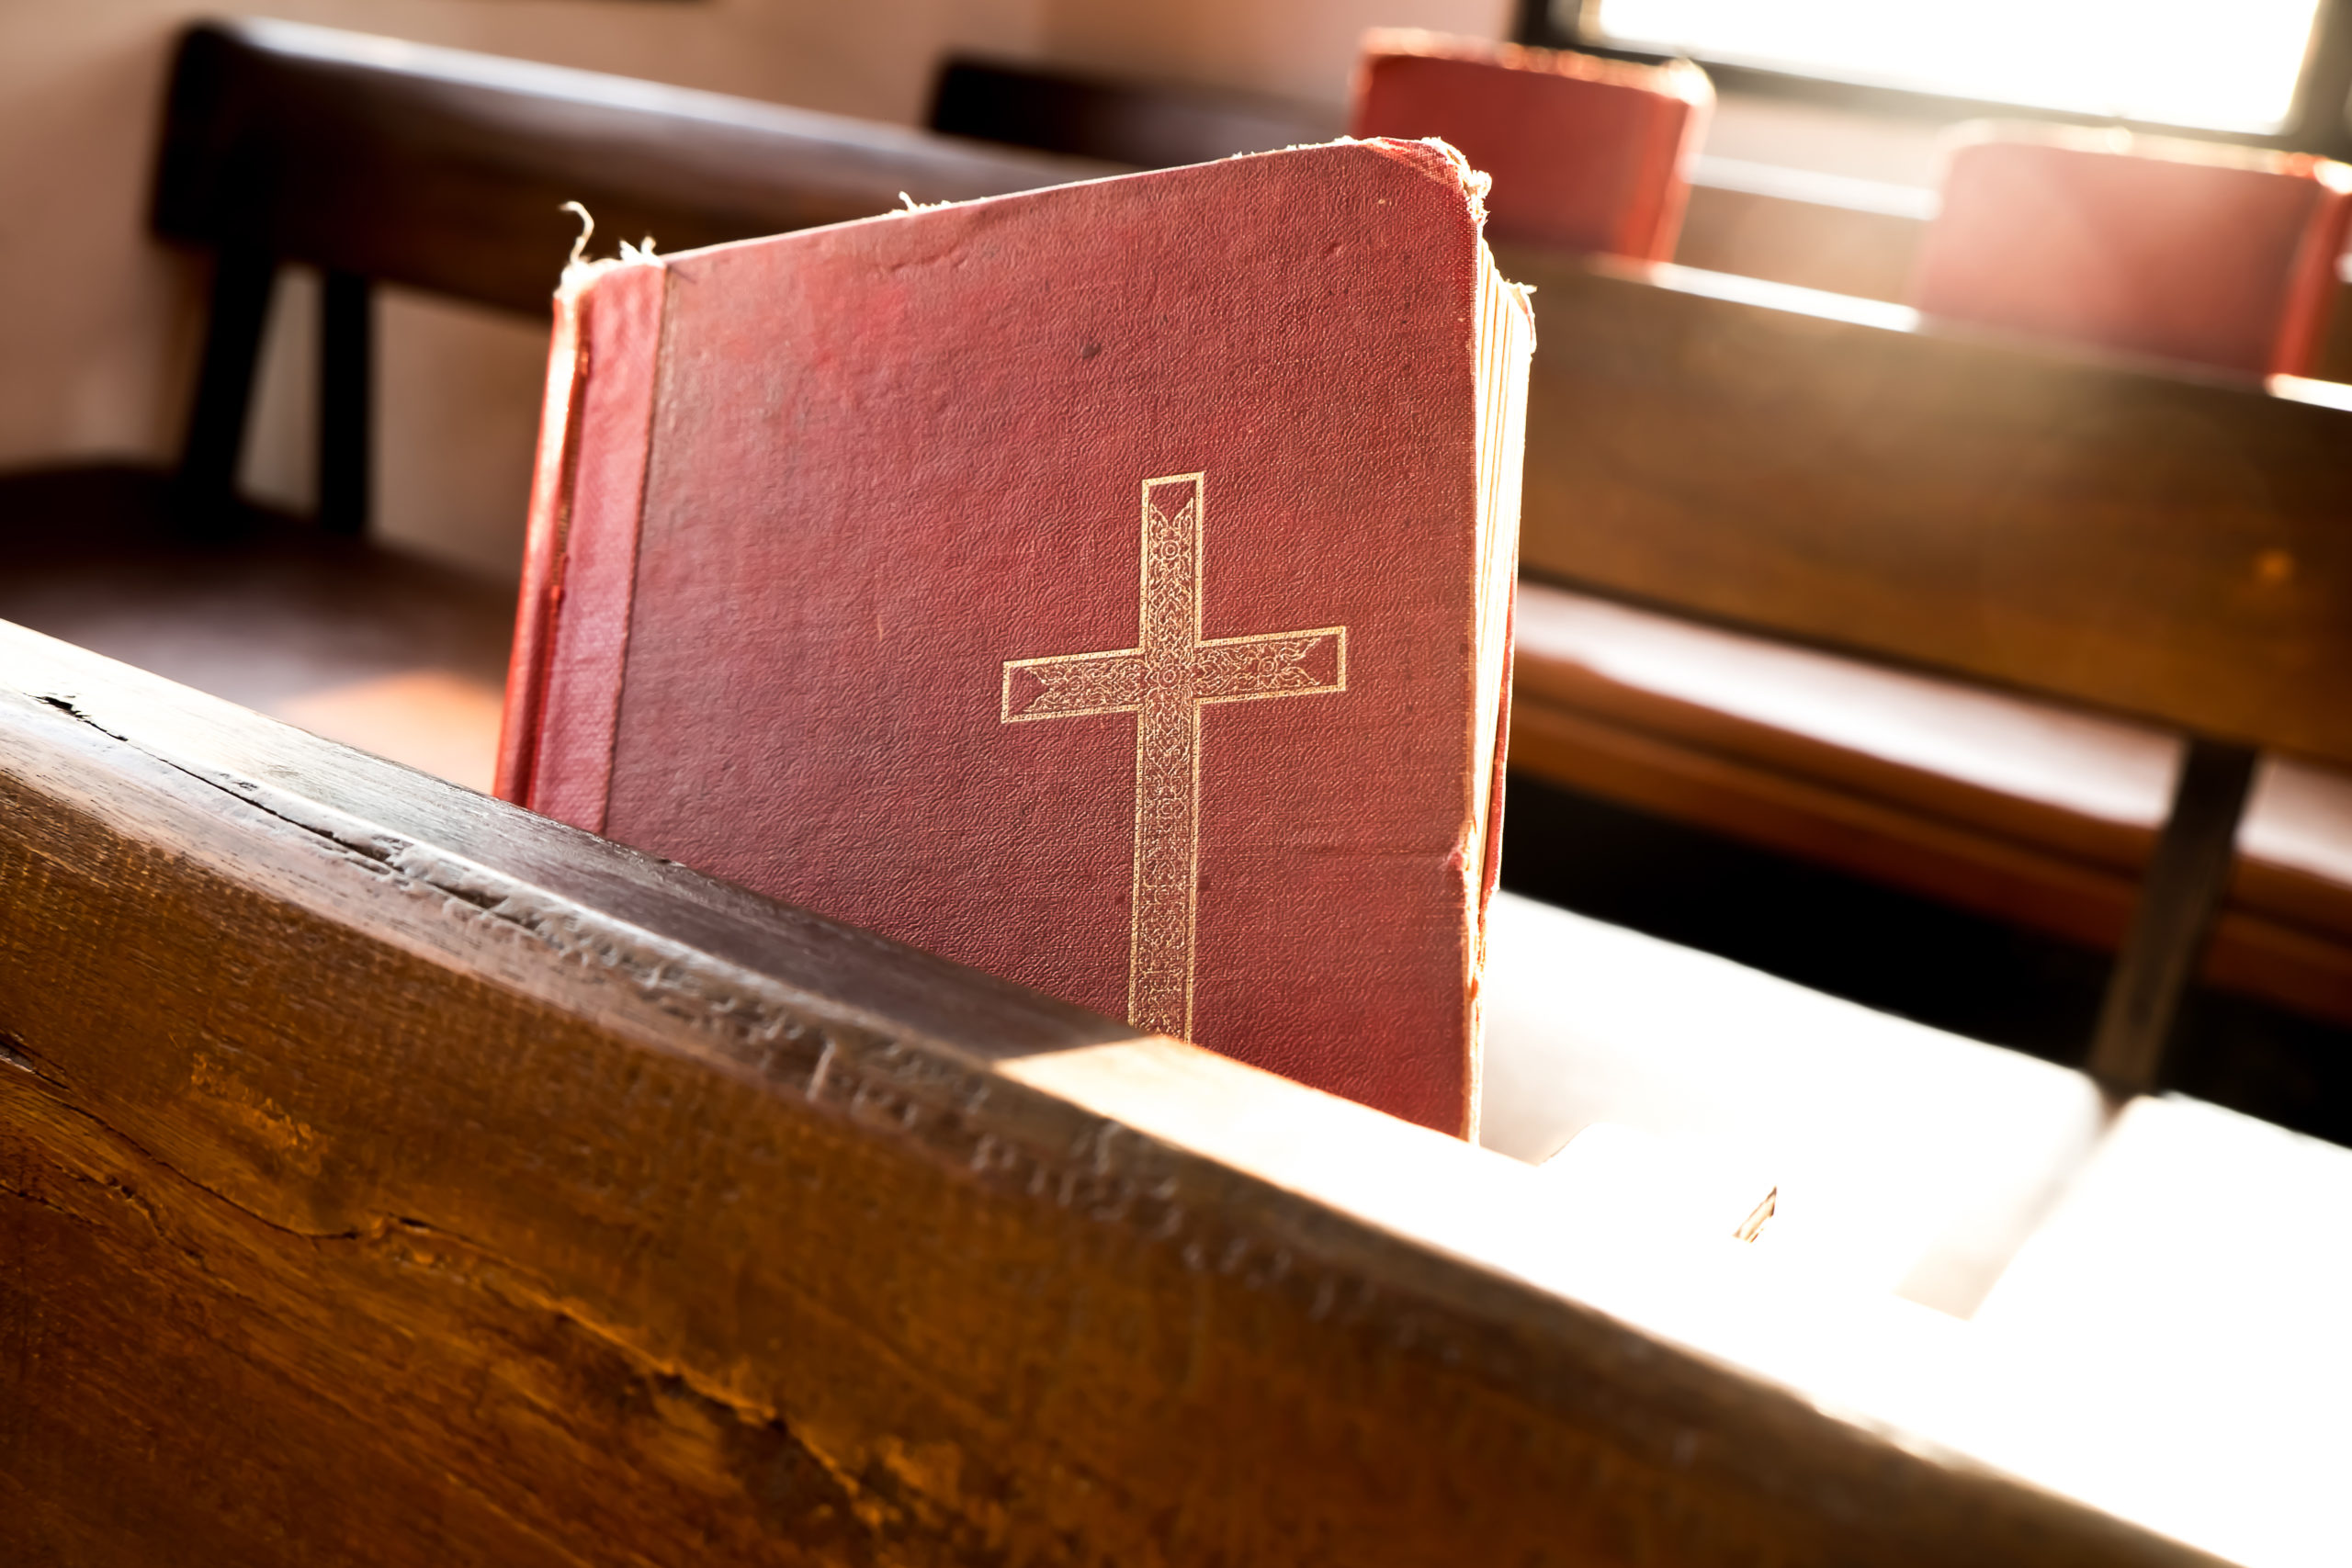 The old red books or red worship songbooks in church